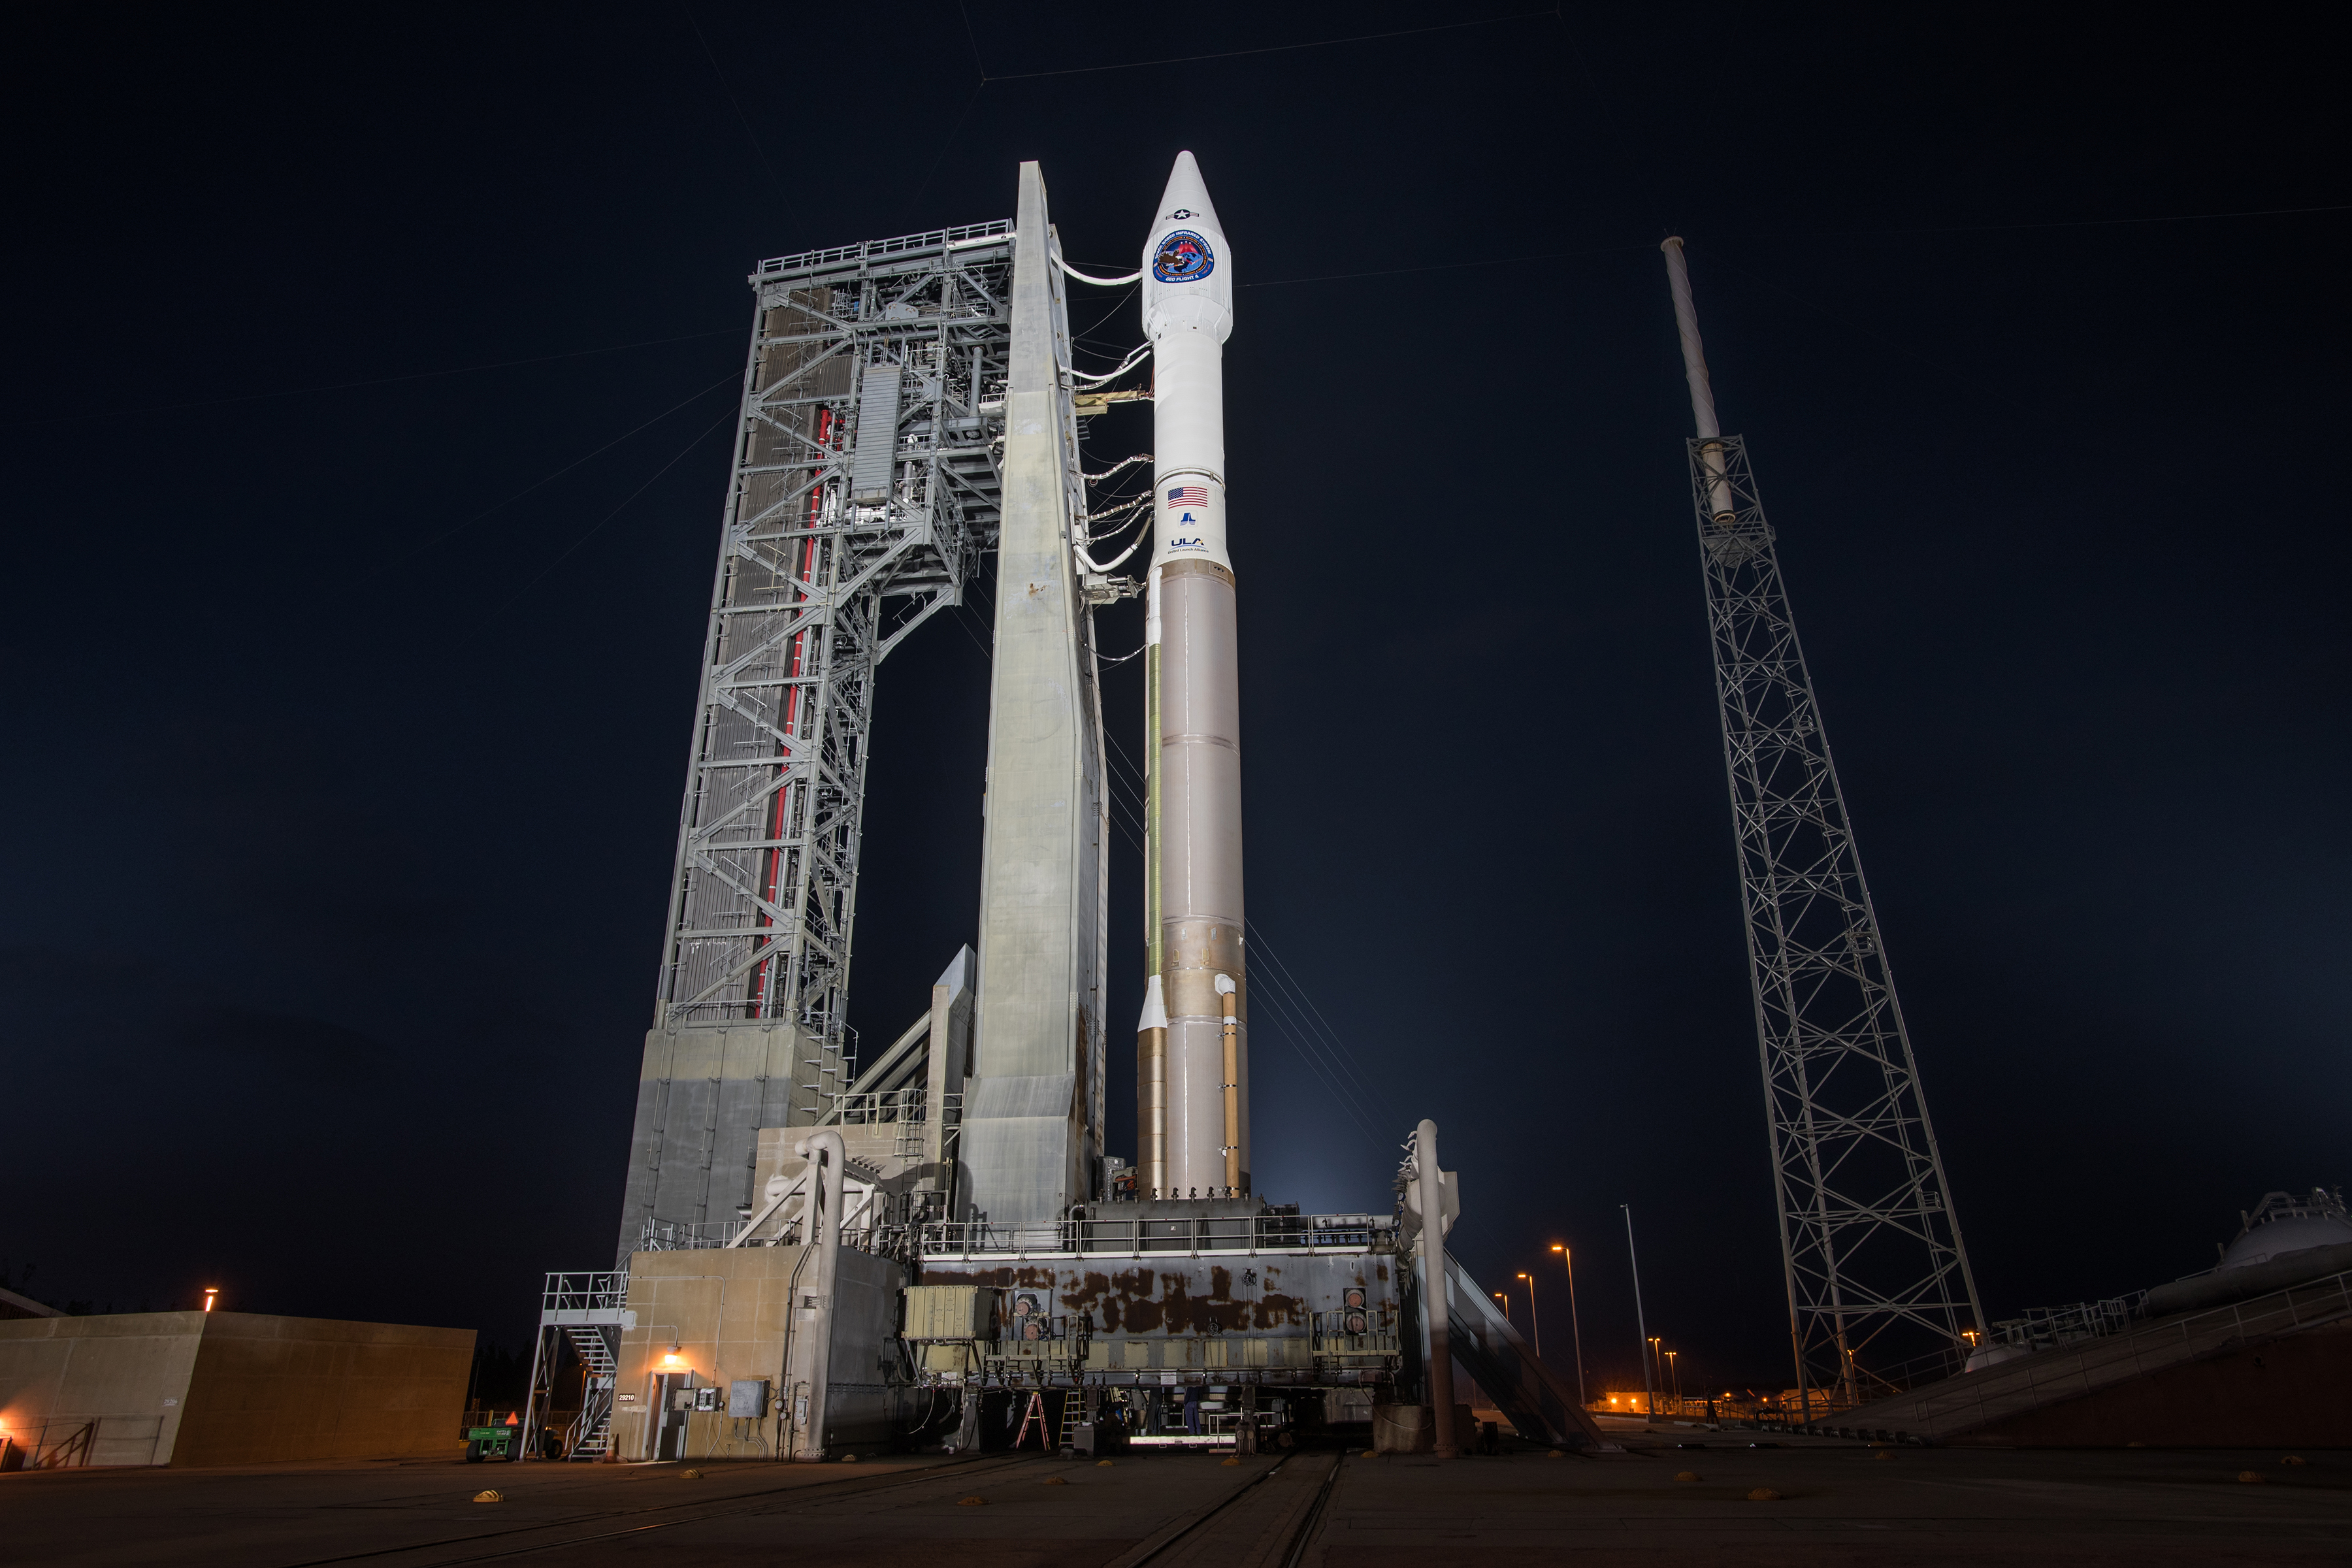 Watch An Atlas V Rocket Launch A Missile Detecting Satellite To Infrared Video Of Hovering Nasa Lander Orbit The Verge